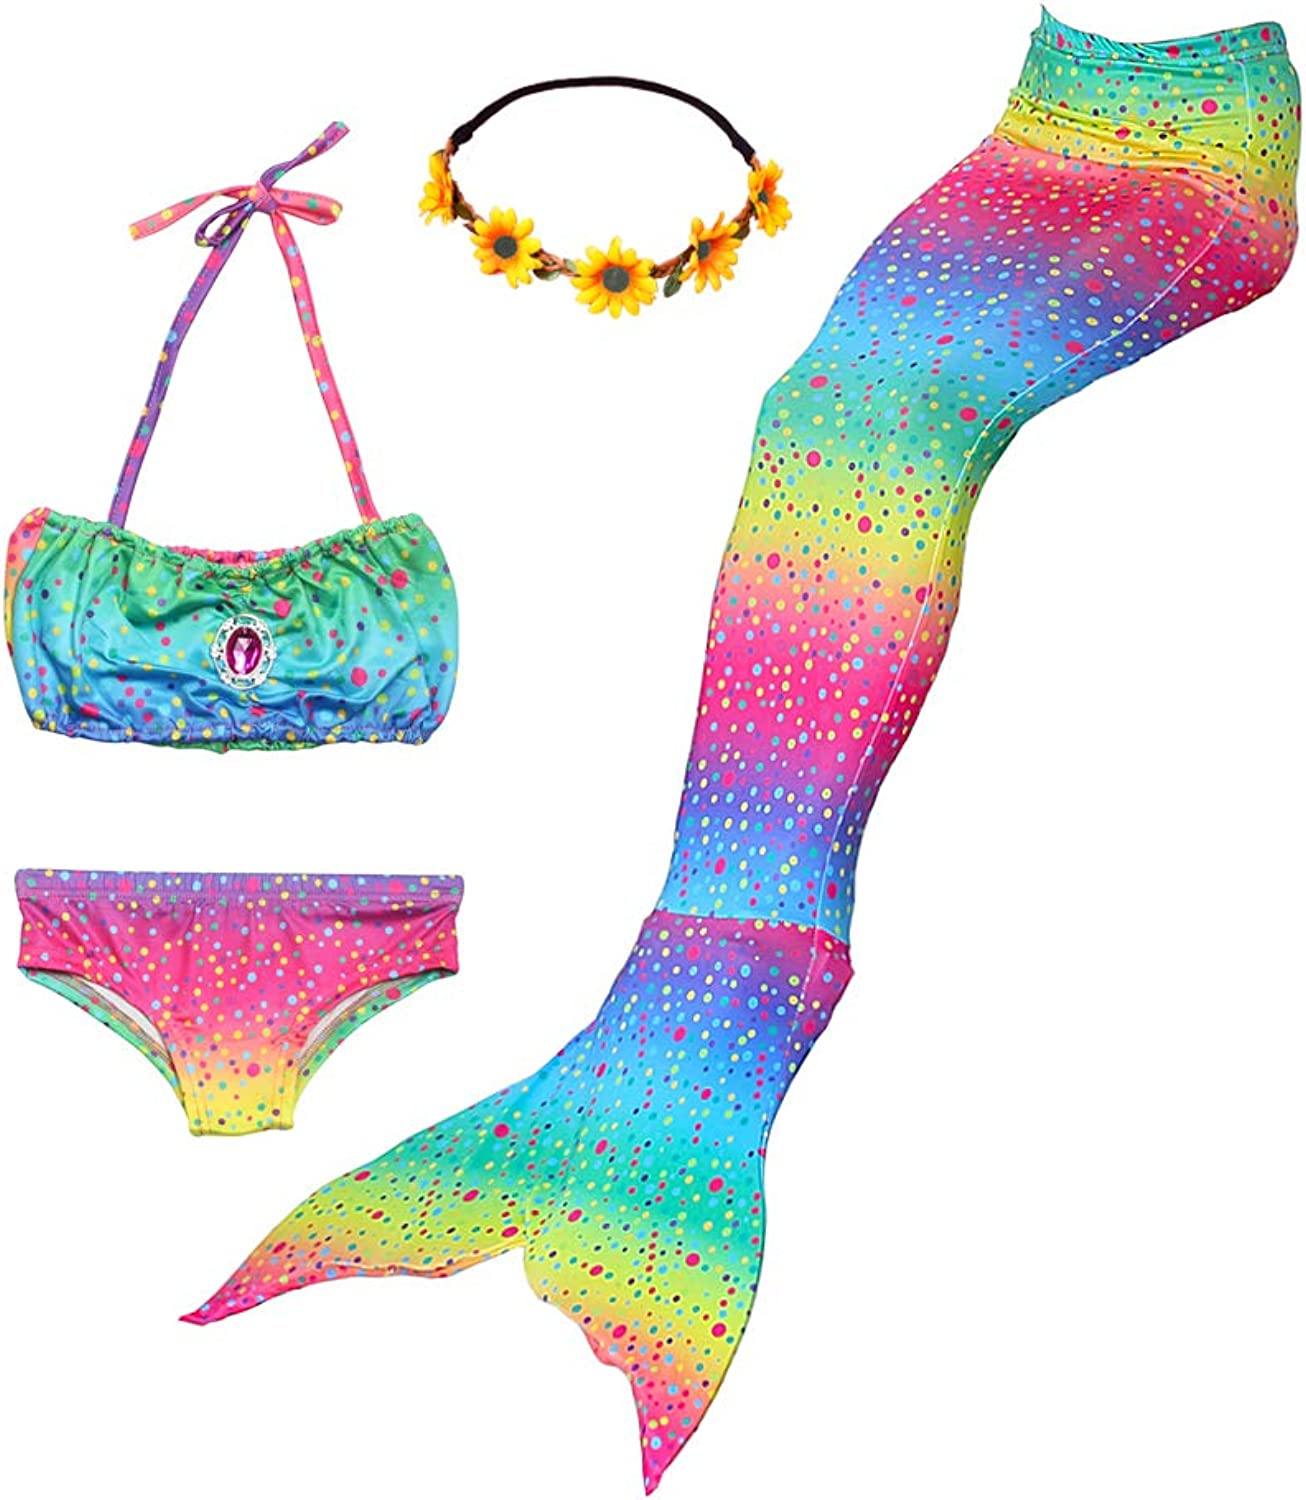 Ubetoone 3Pcs Mermaid Tails for Christmas Party Swimming Swimsuit Bikini Mermaid Party Supplies